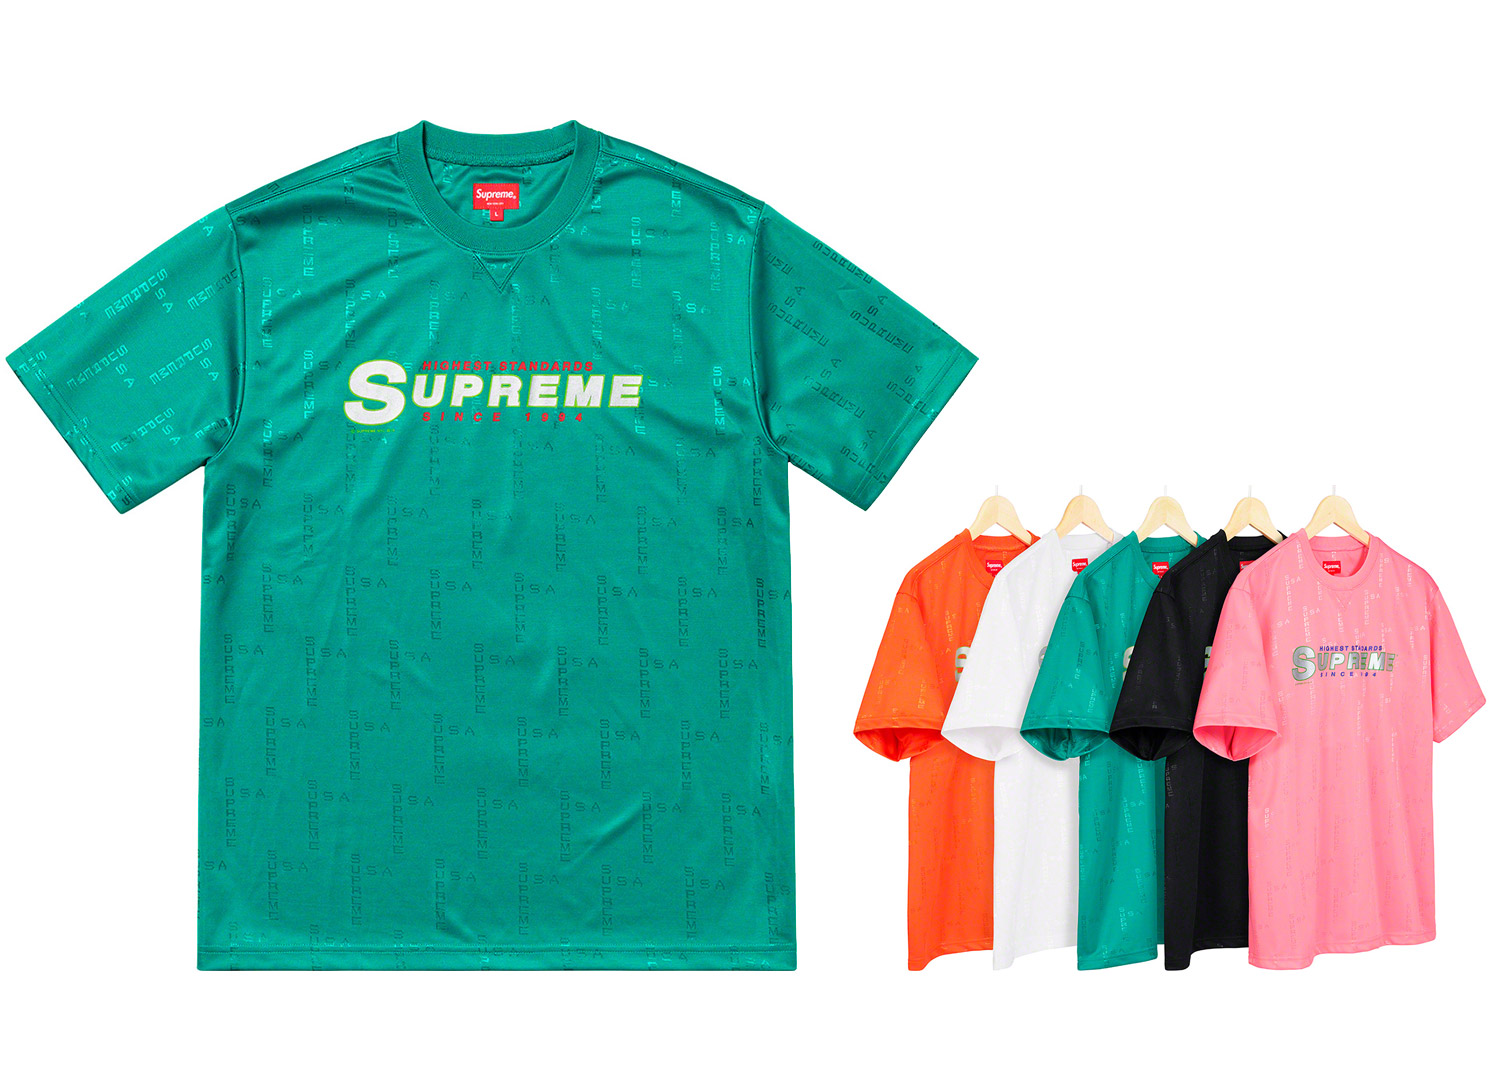 Highest Standard Athletic S/S Top